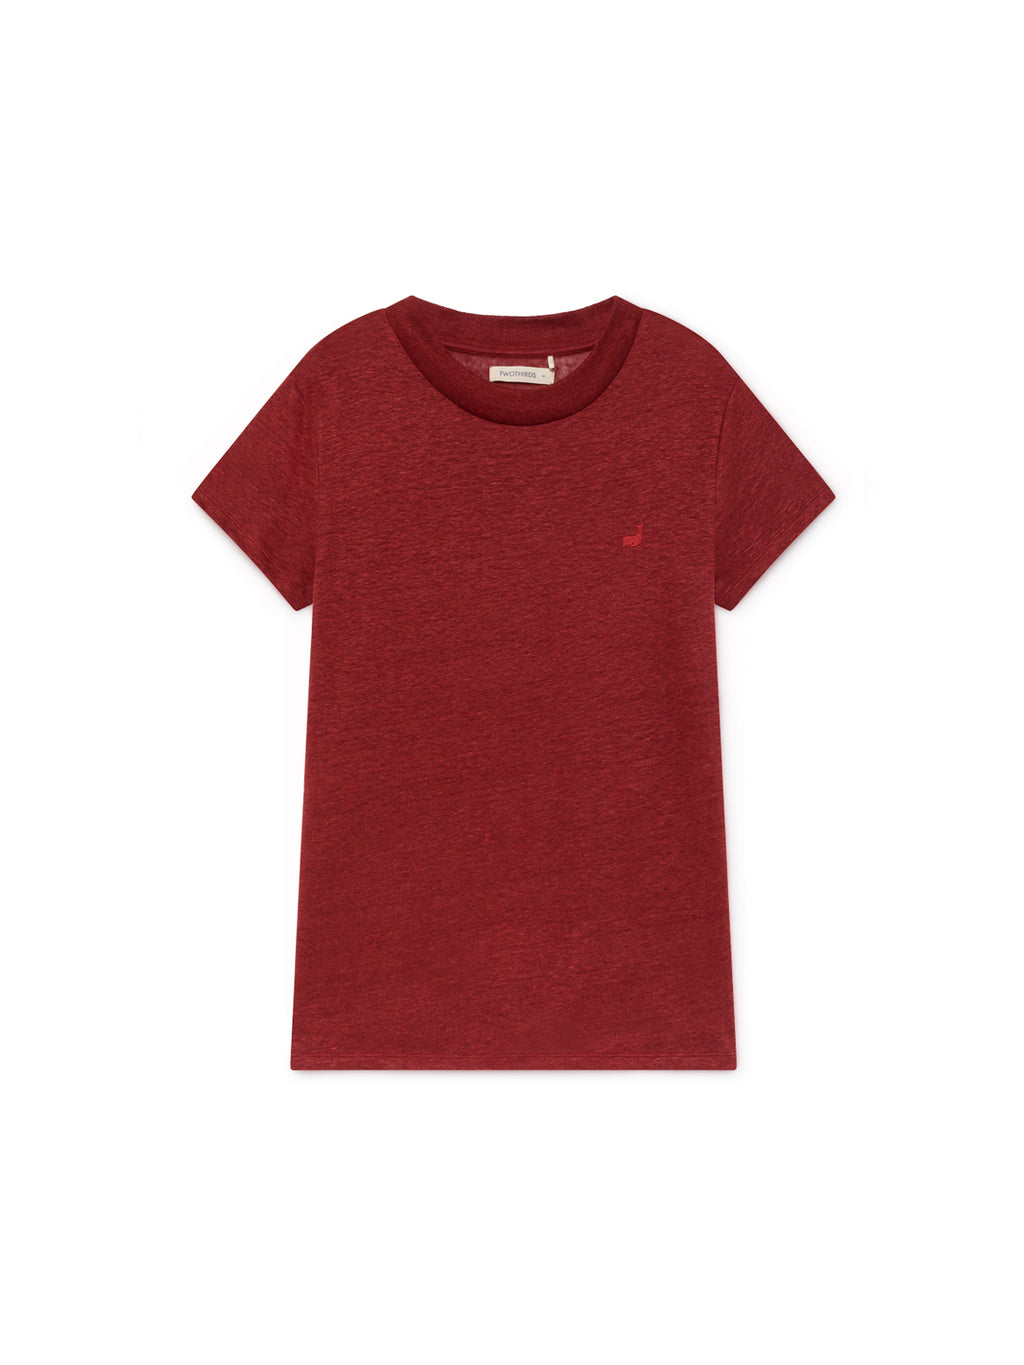 TWOTHIRDS Womens Tee: Irabu - Burgundy front